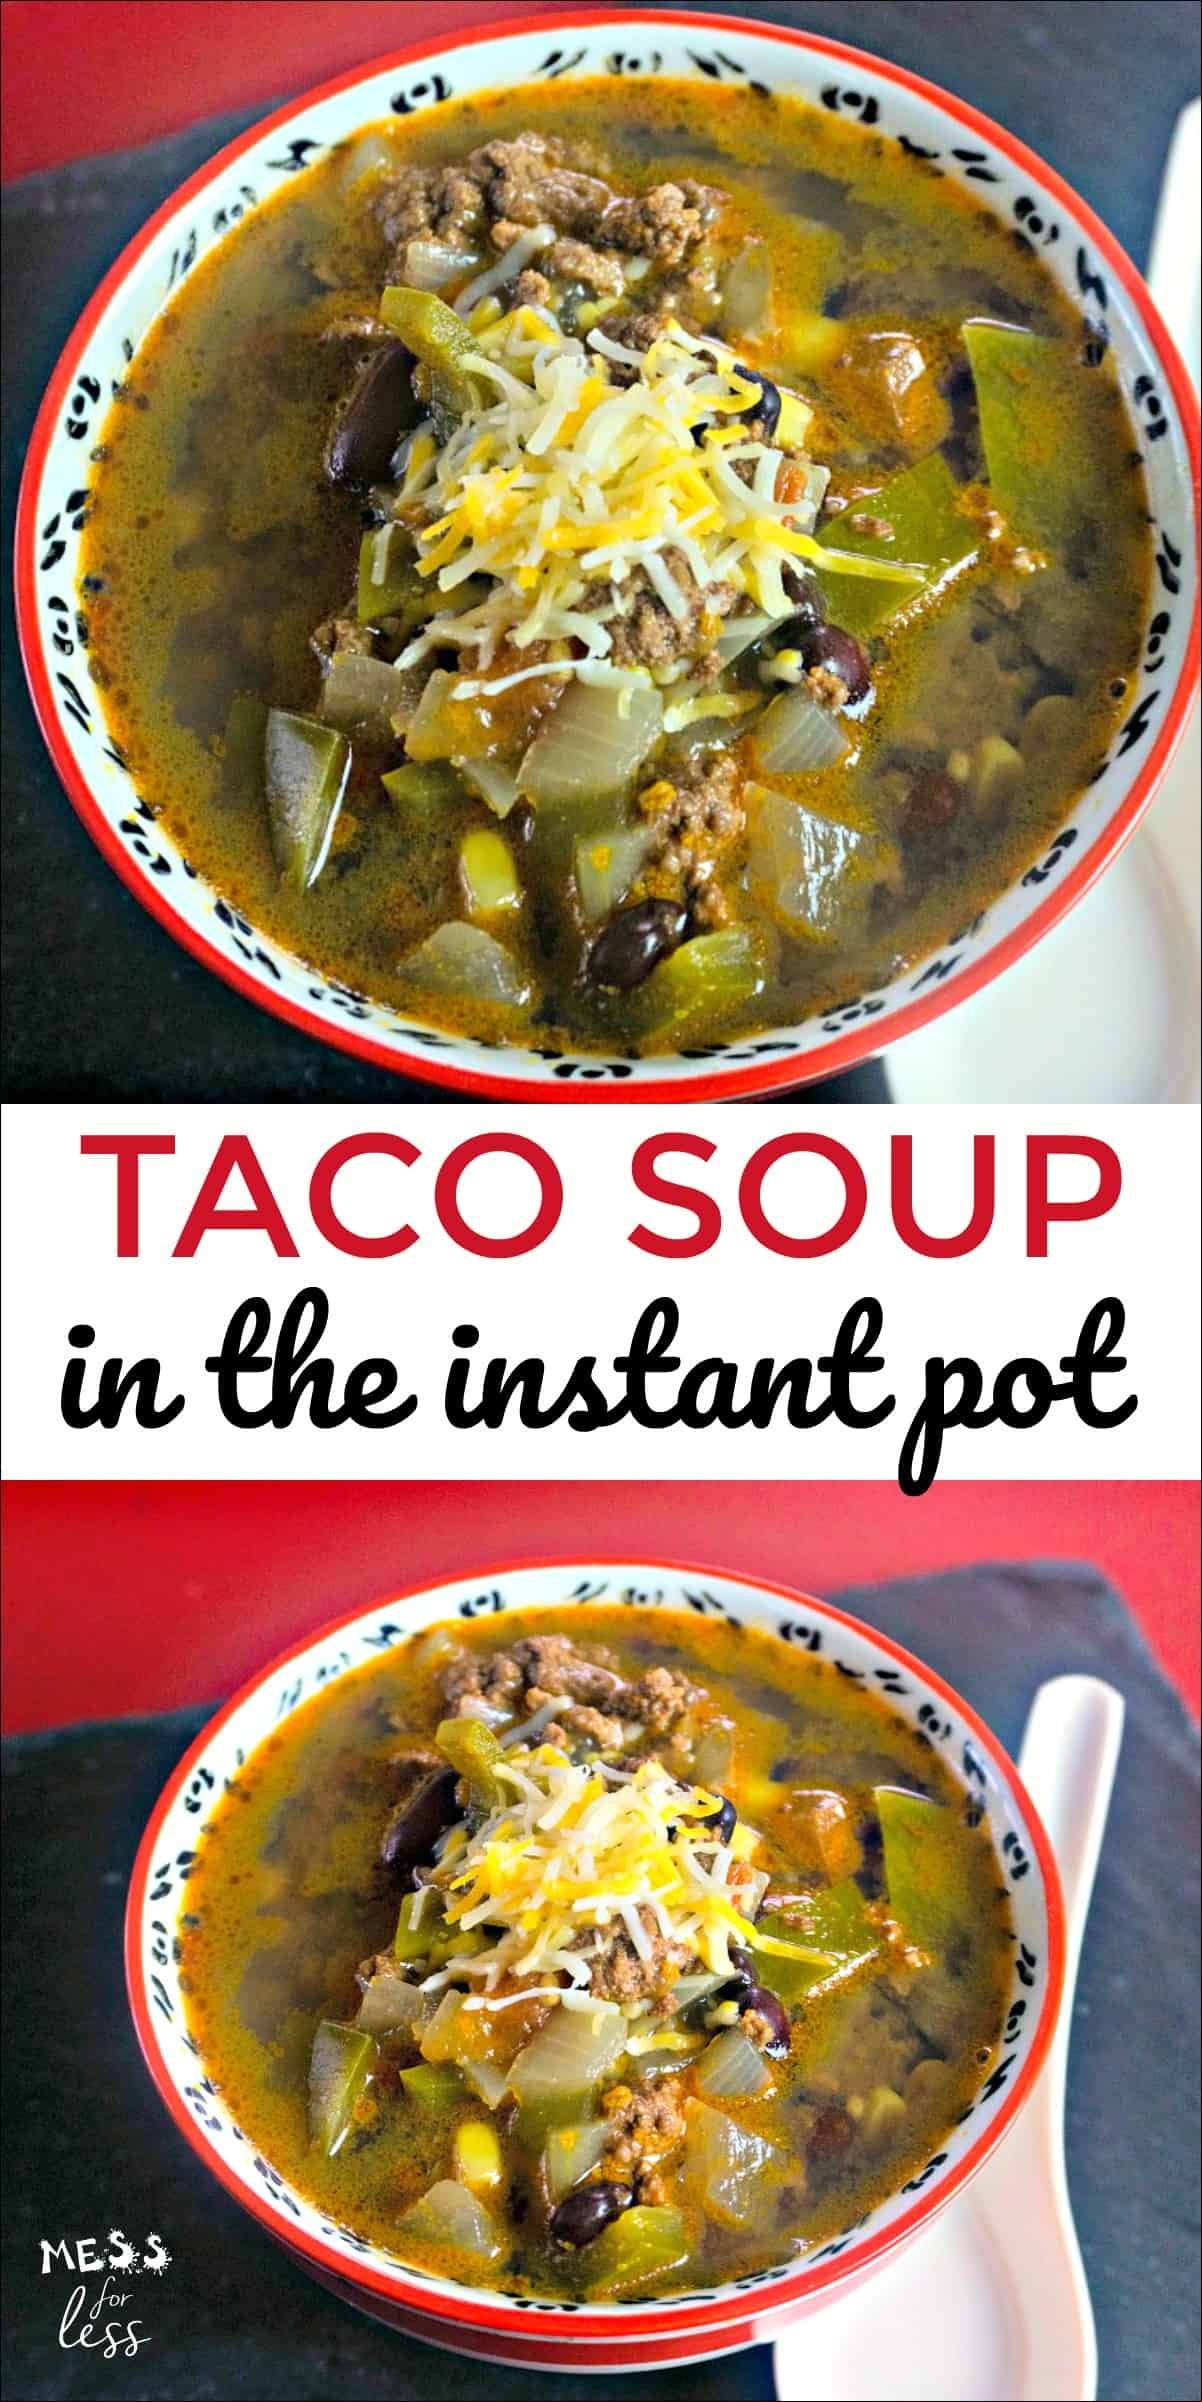 This Instant Pot Taco Soup Recipe is filled with ground beef, healthy beans, tomatoes and peppers. Such a filling and easy soup to make in the pressure cooker. #instantpot #pressurecooker #tacosoup